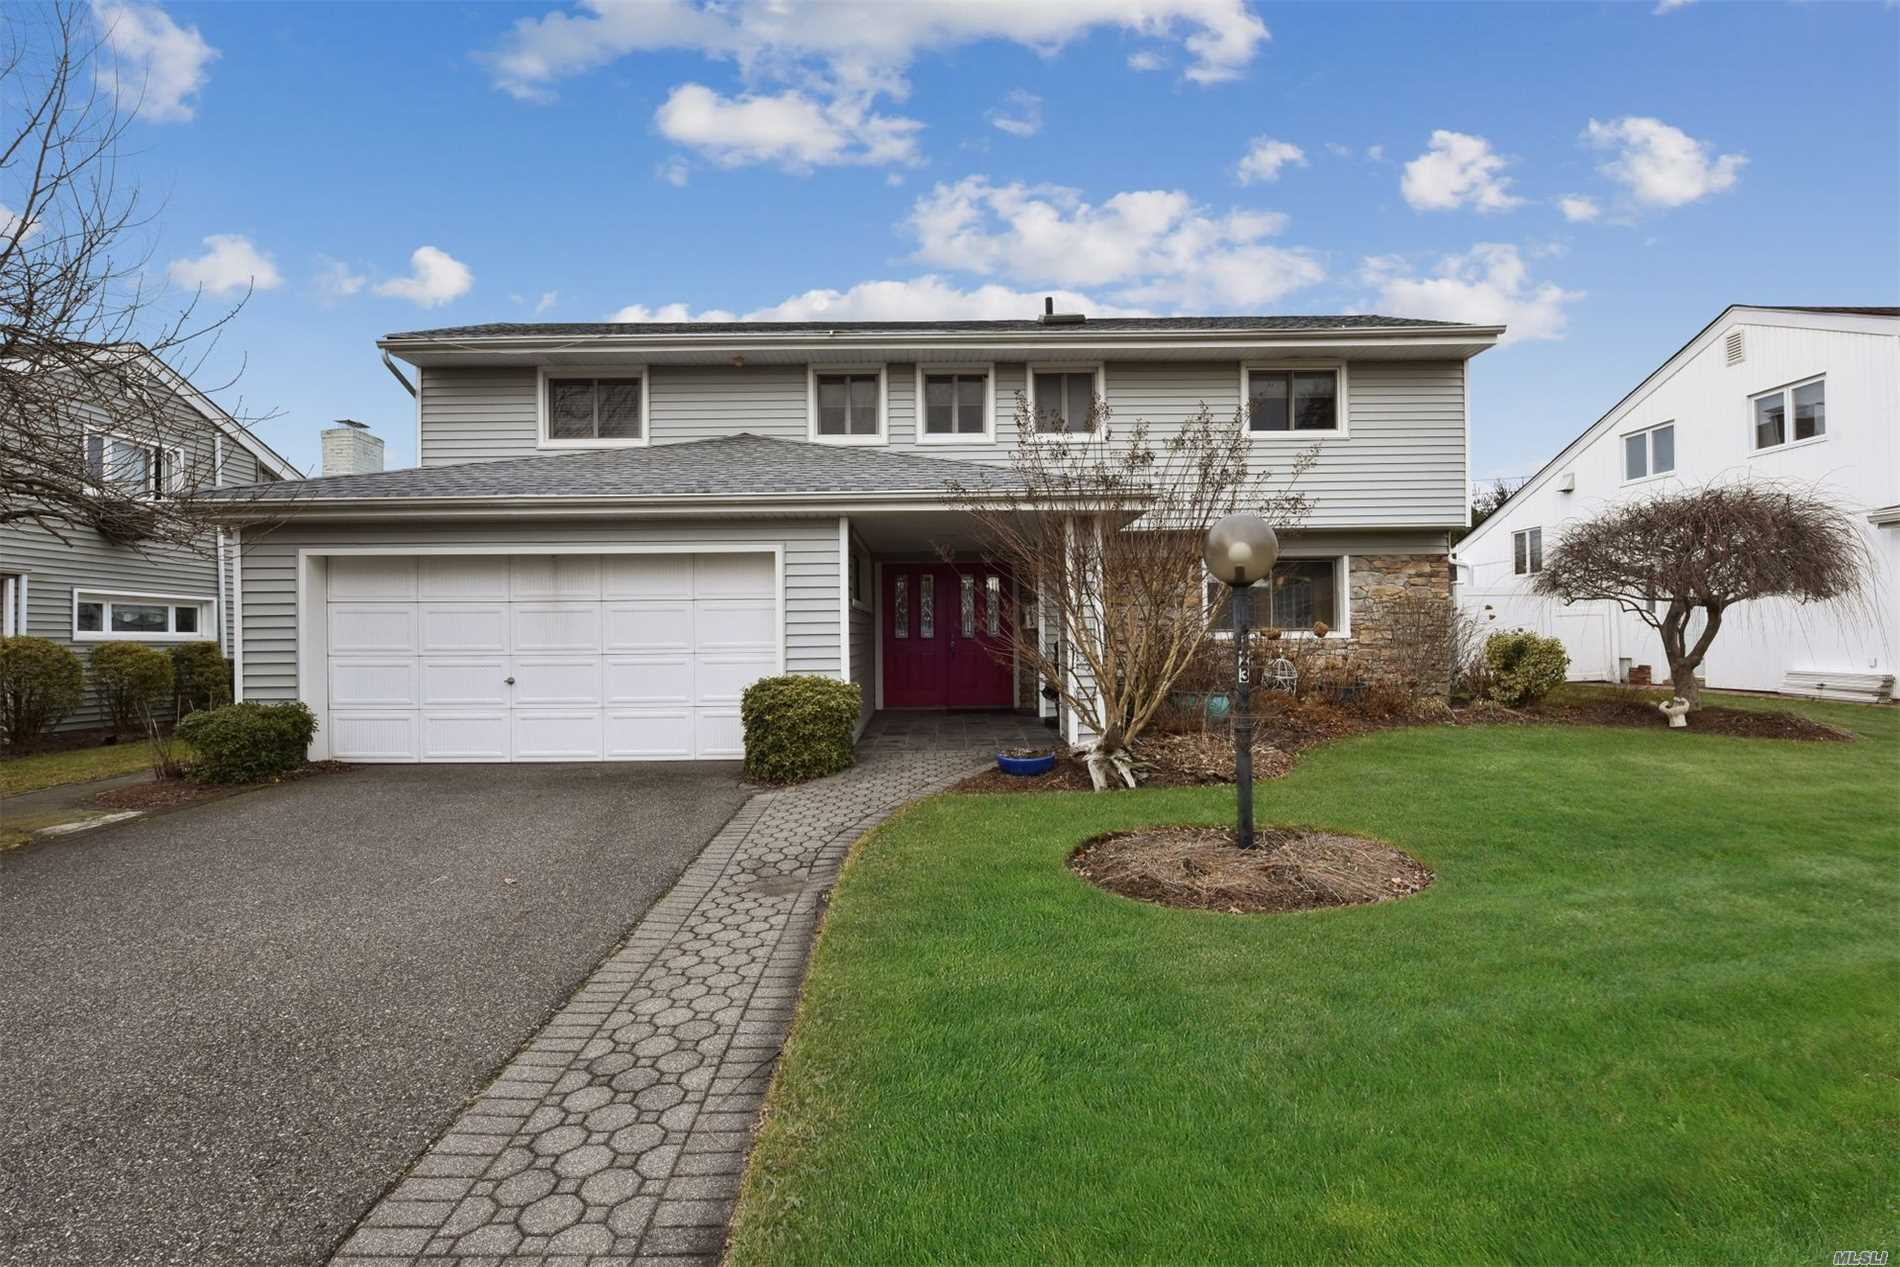 Perfect Location Is The Setting For This Wonderful Spacious Morton Split- Updates All Through This Home (Kitchen, Baths, Roof, Heating, Electric, Siding, Fencing And Pavers)Fireplace, Skylights, Vaulted Ceilings, Main Level Laundry , Walls Of Glass And So Much More Taxes Being Grieved